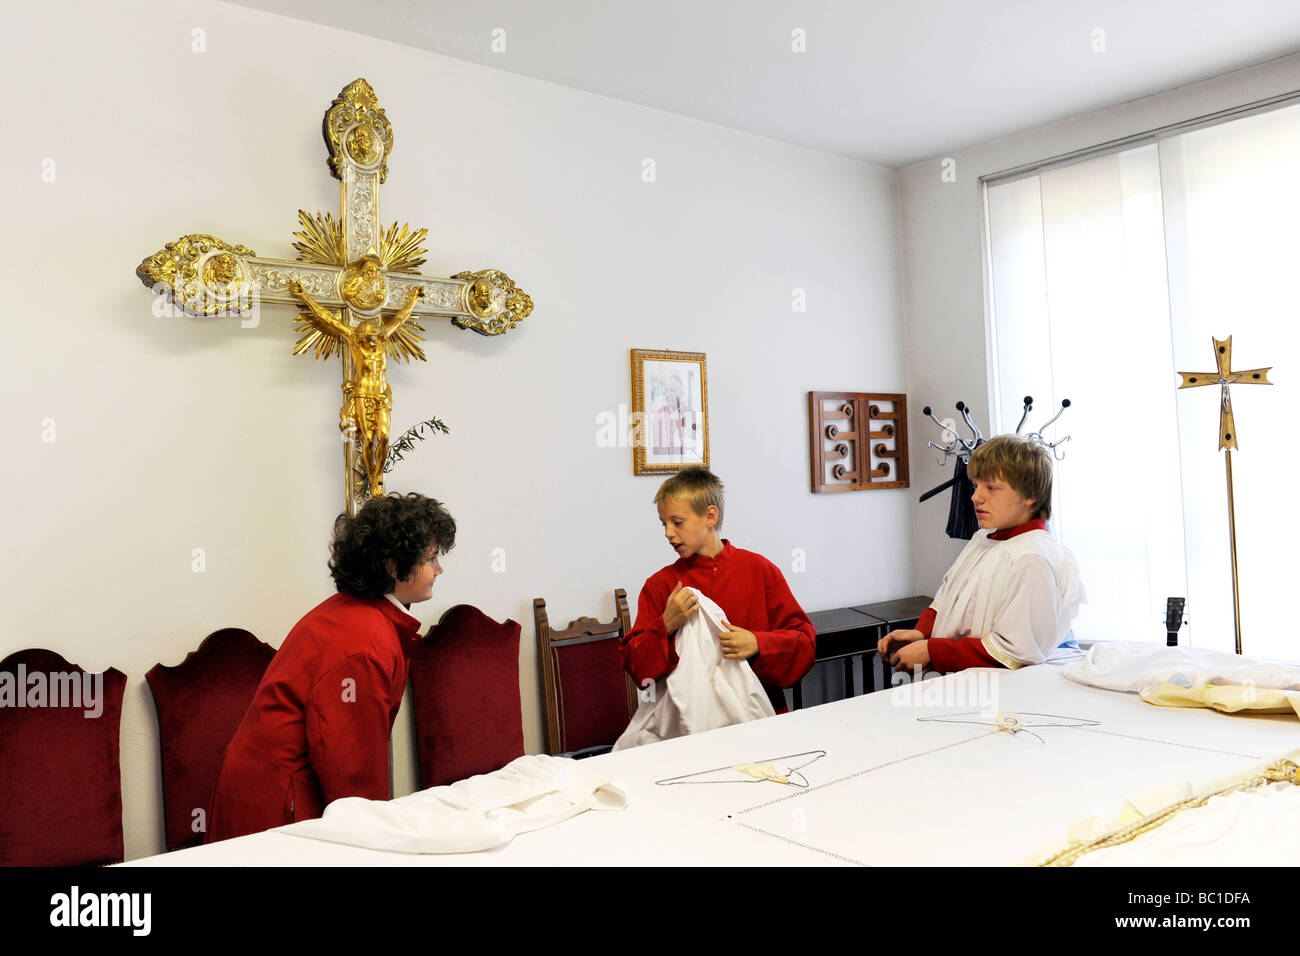 boys in the sacristy legnano province of milan - Stock Image